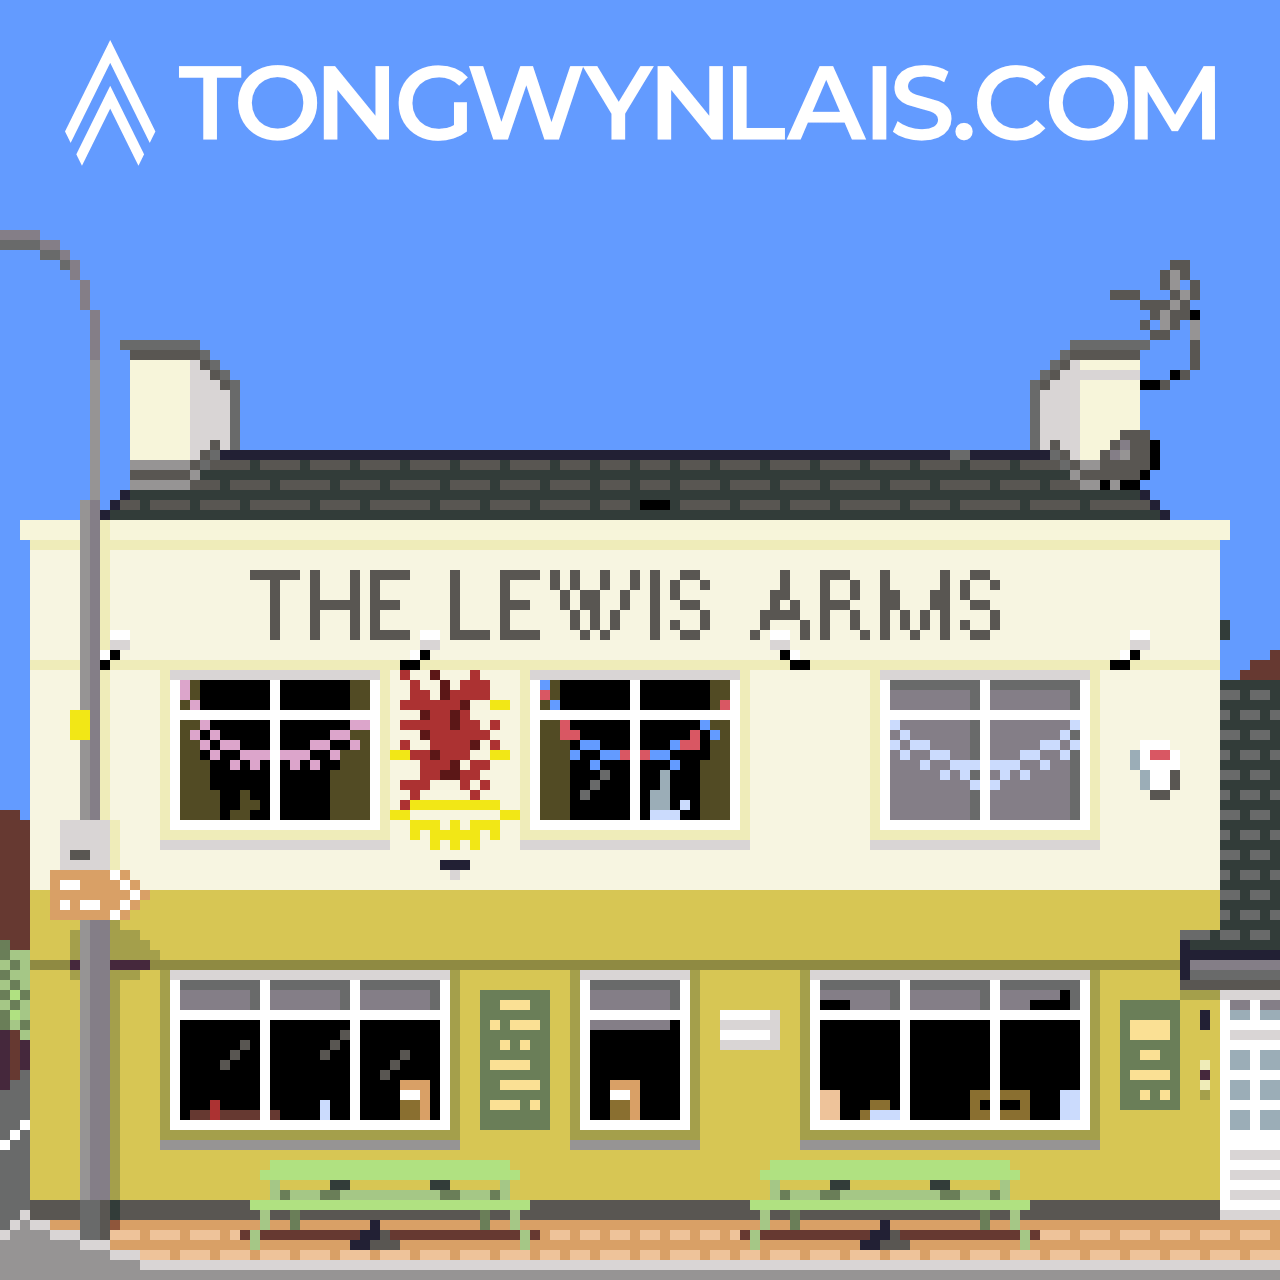 Pixel art illustration of The Lewis Arms